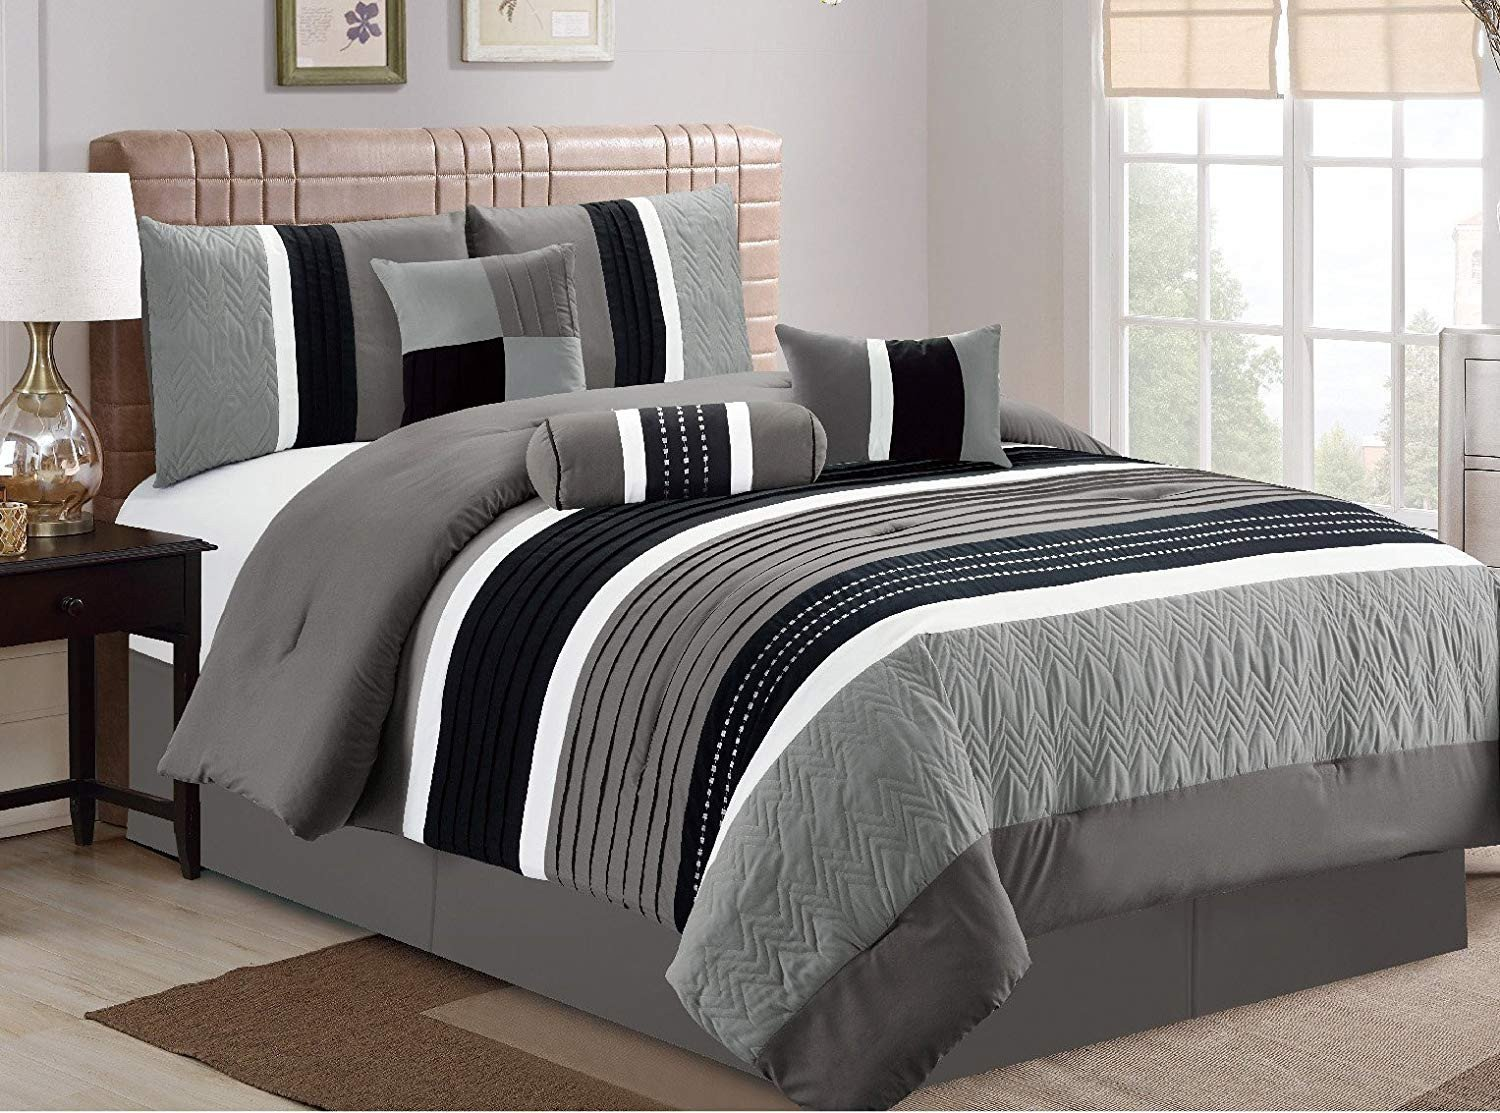 7 Piece Bedroom Set Queen Awesome Esca 7 Piece Closeout Luxury Bed In Bag forter Set Queen Grey